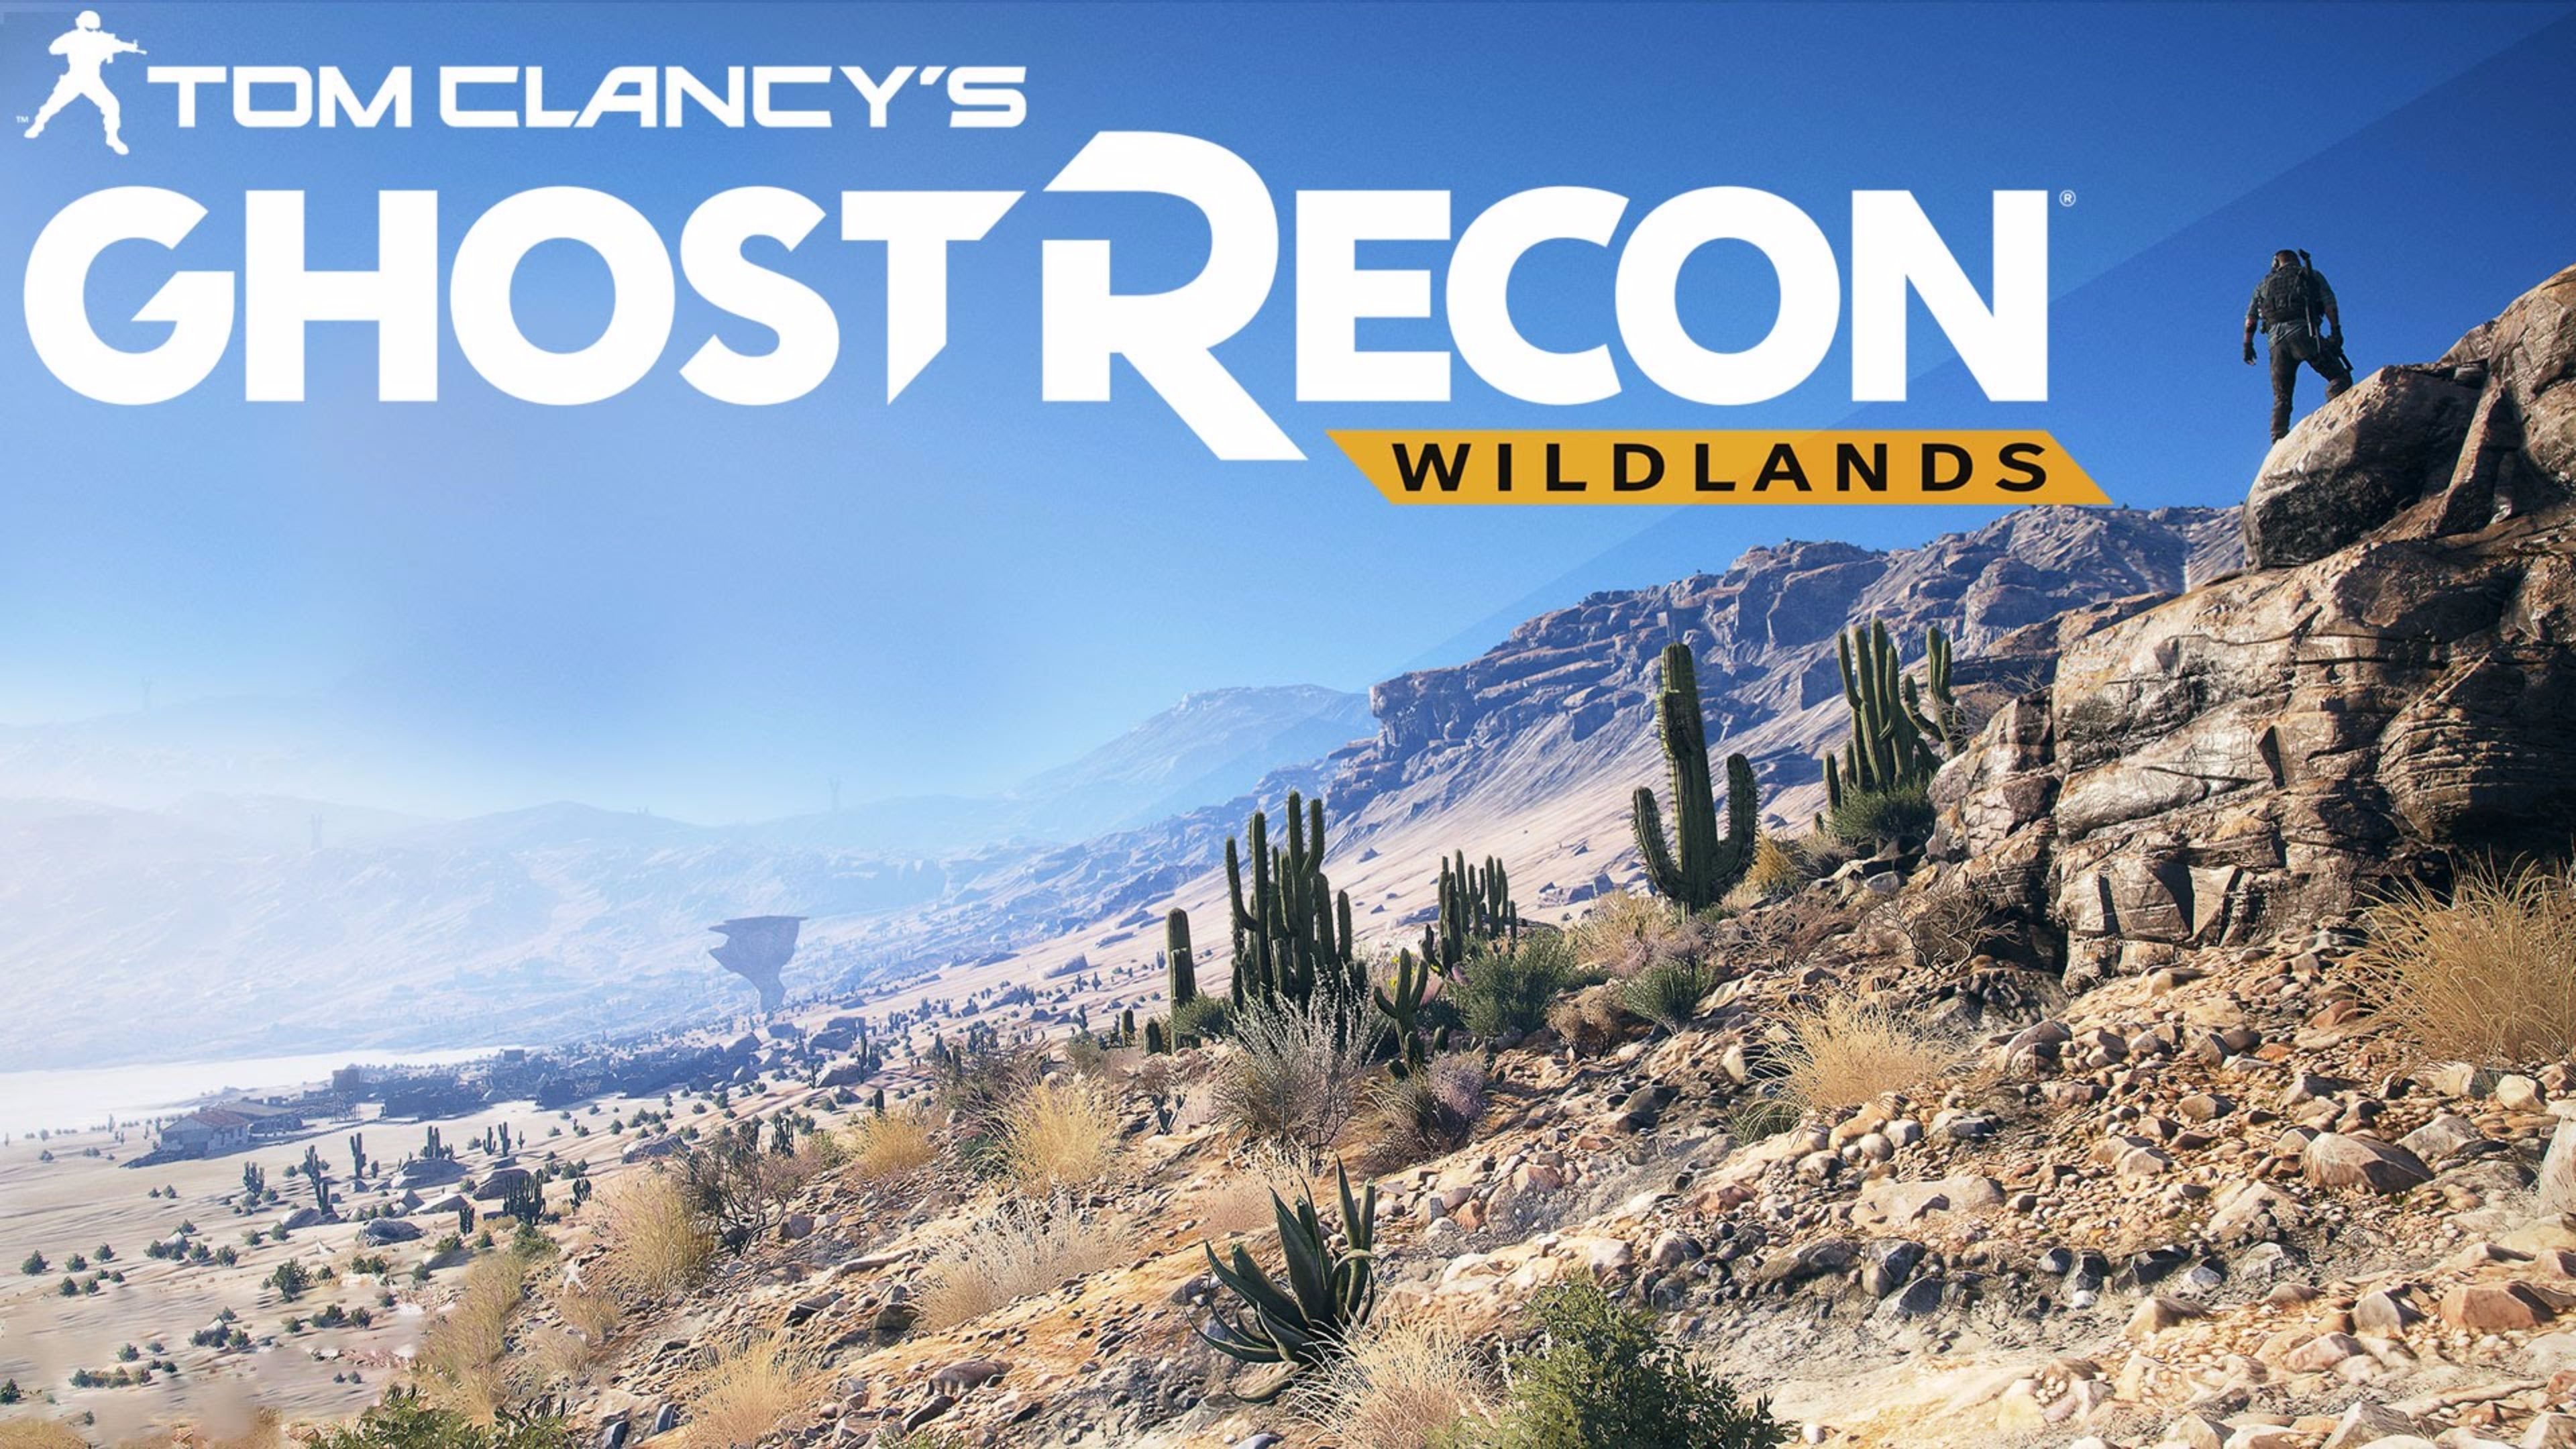 Tom Clancy S Ghost Recon Wildlands Hd Wallpapers 2 Tom Clancy